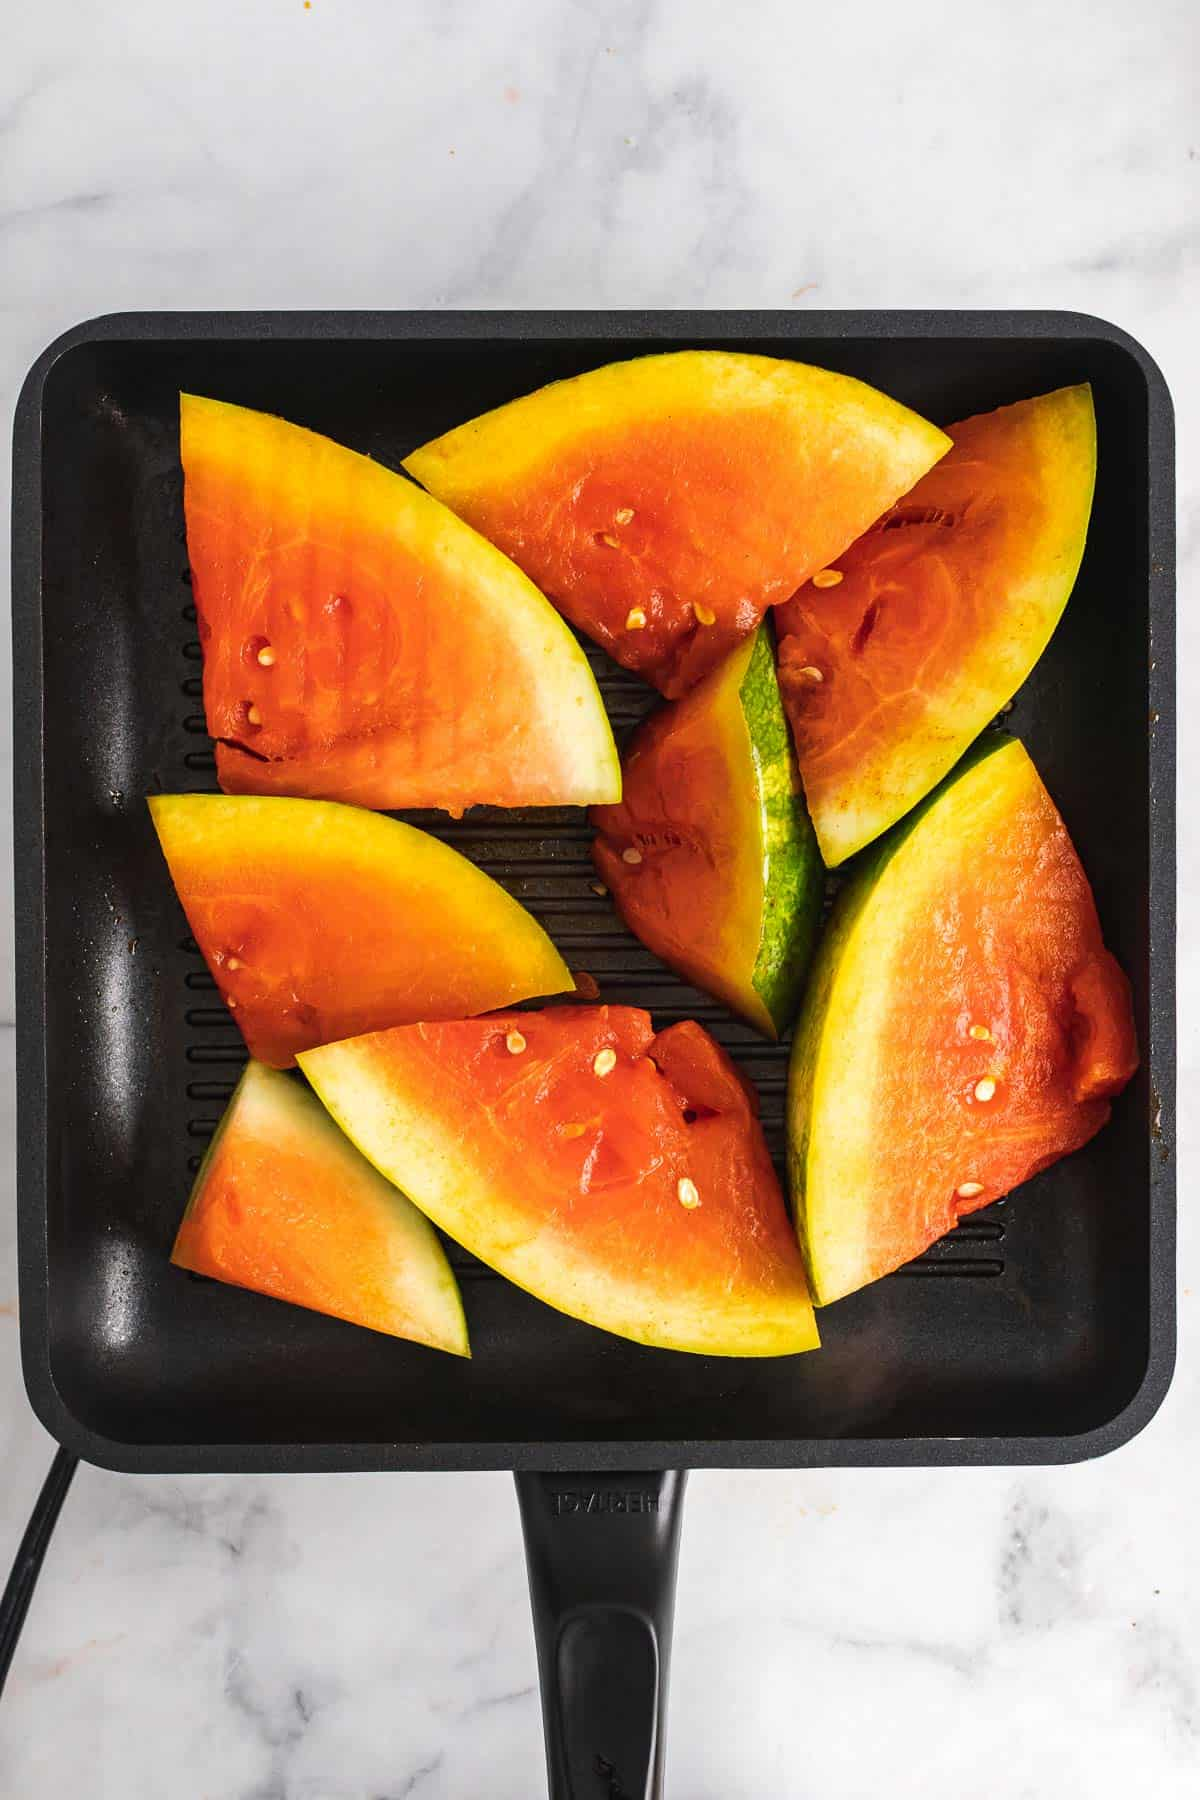 Watermelon slices on a grill pan